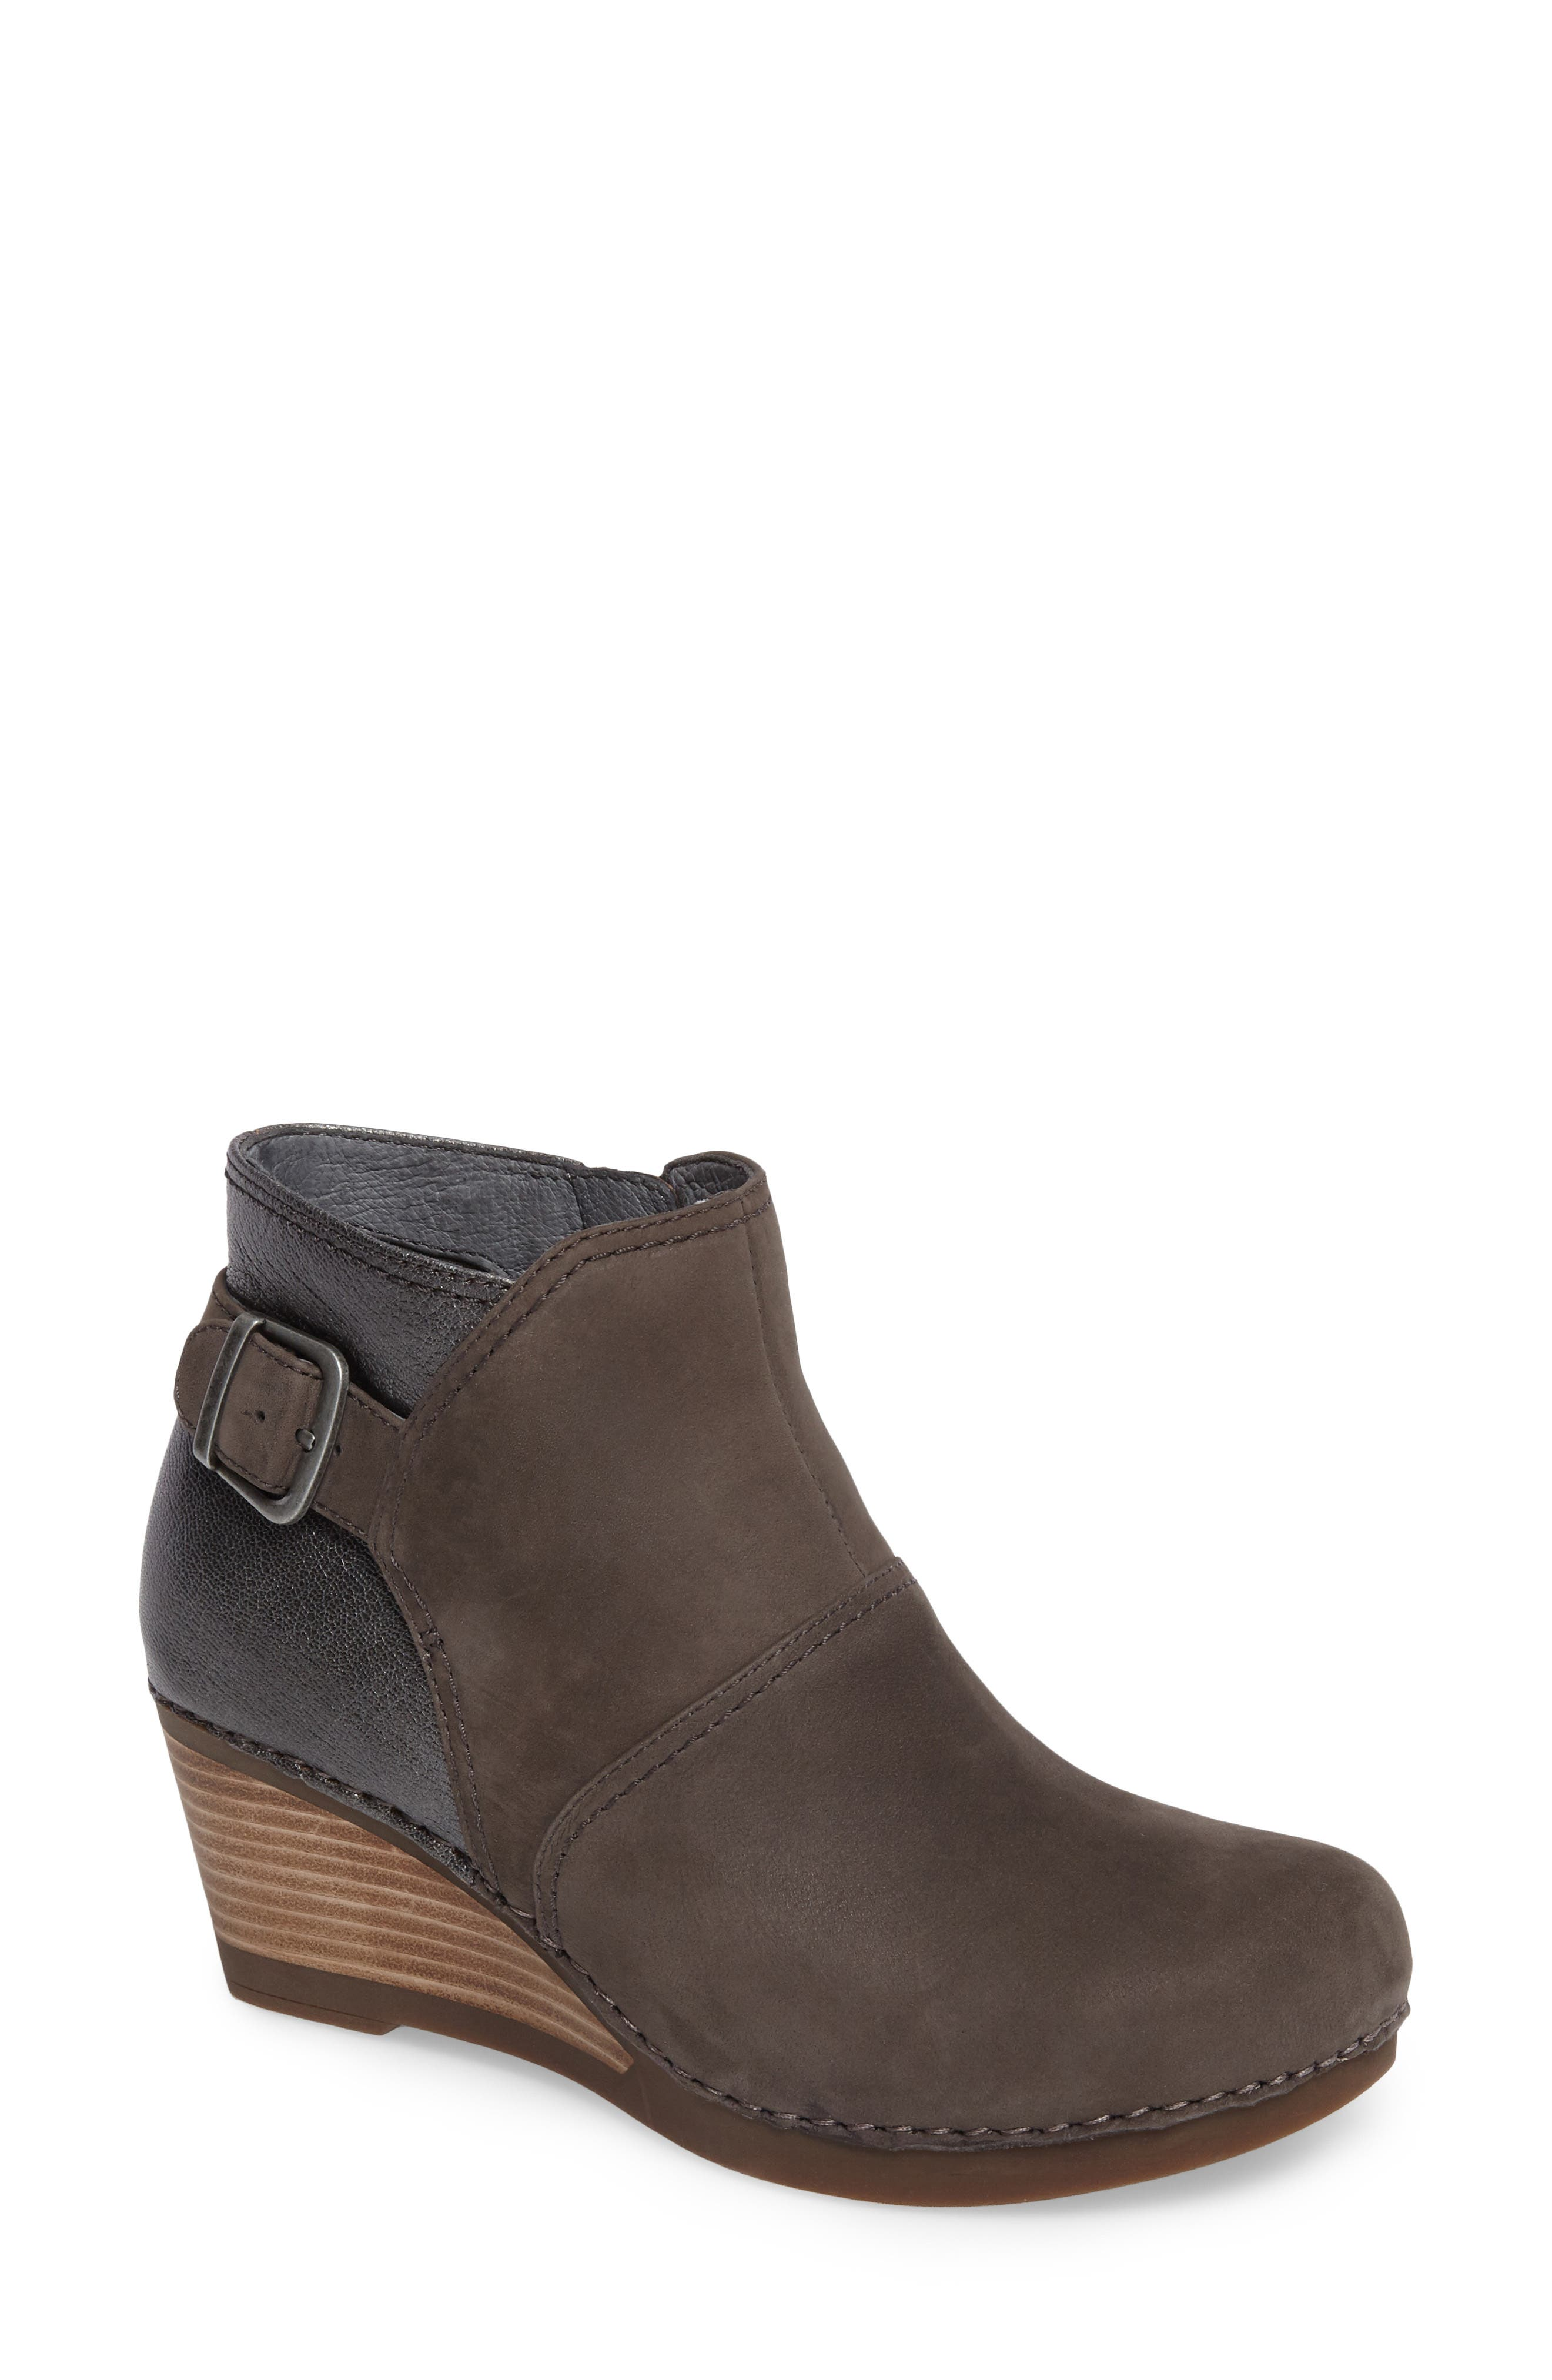 'Shirley' Wedge Bootie,                             Main thumbnail 1, color,                             Grey Nubuck Leather